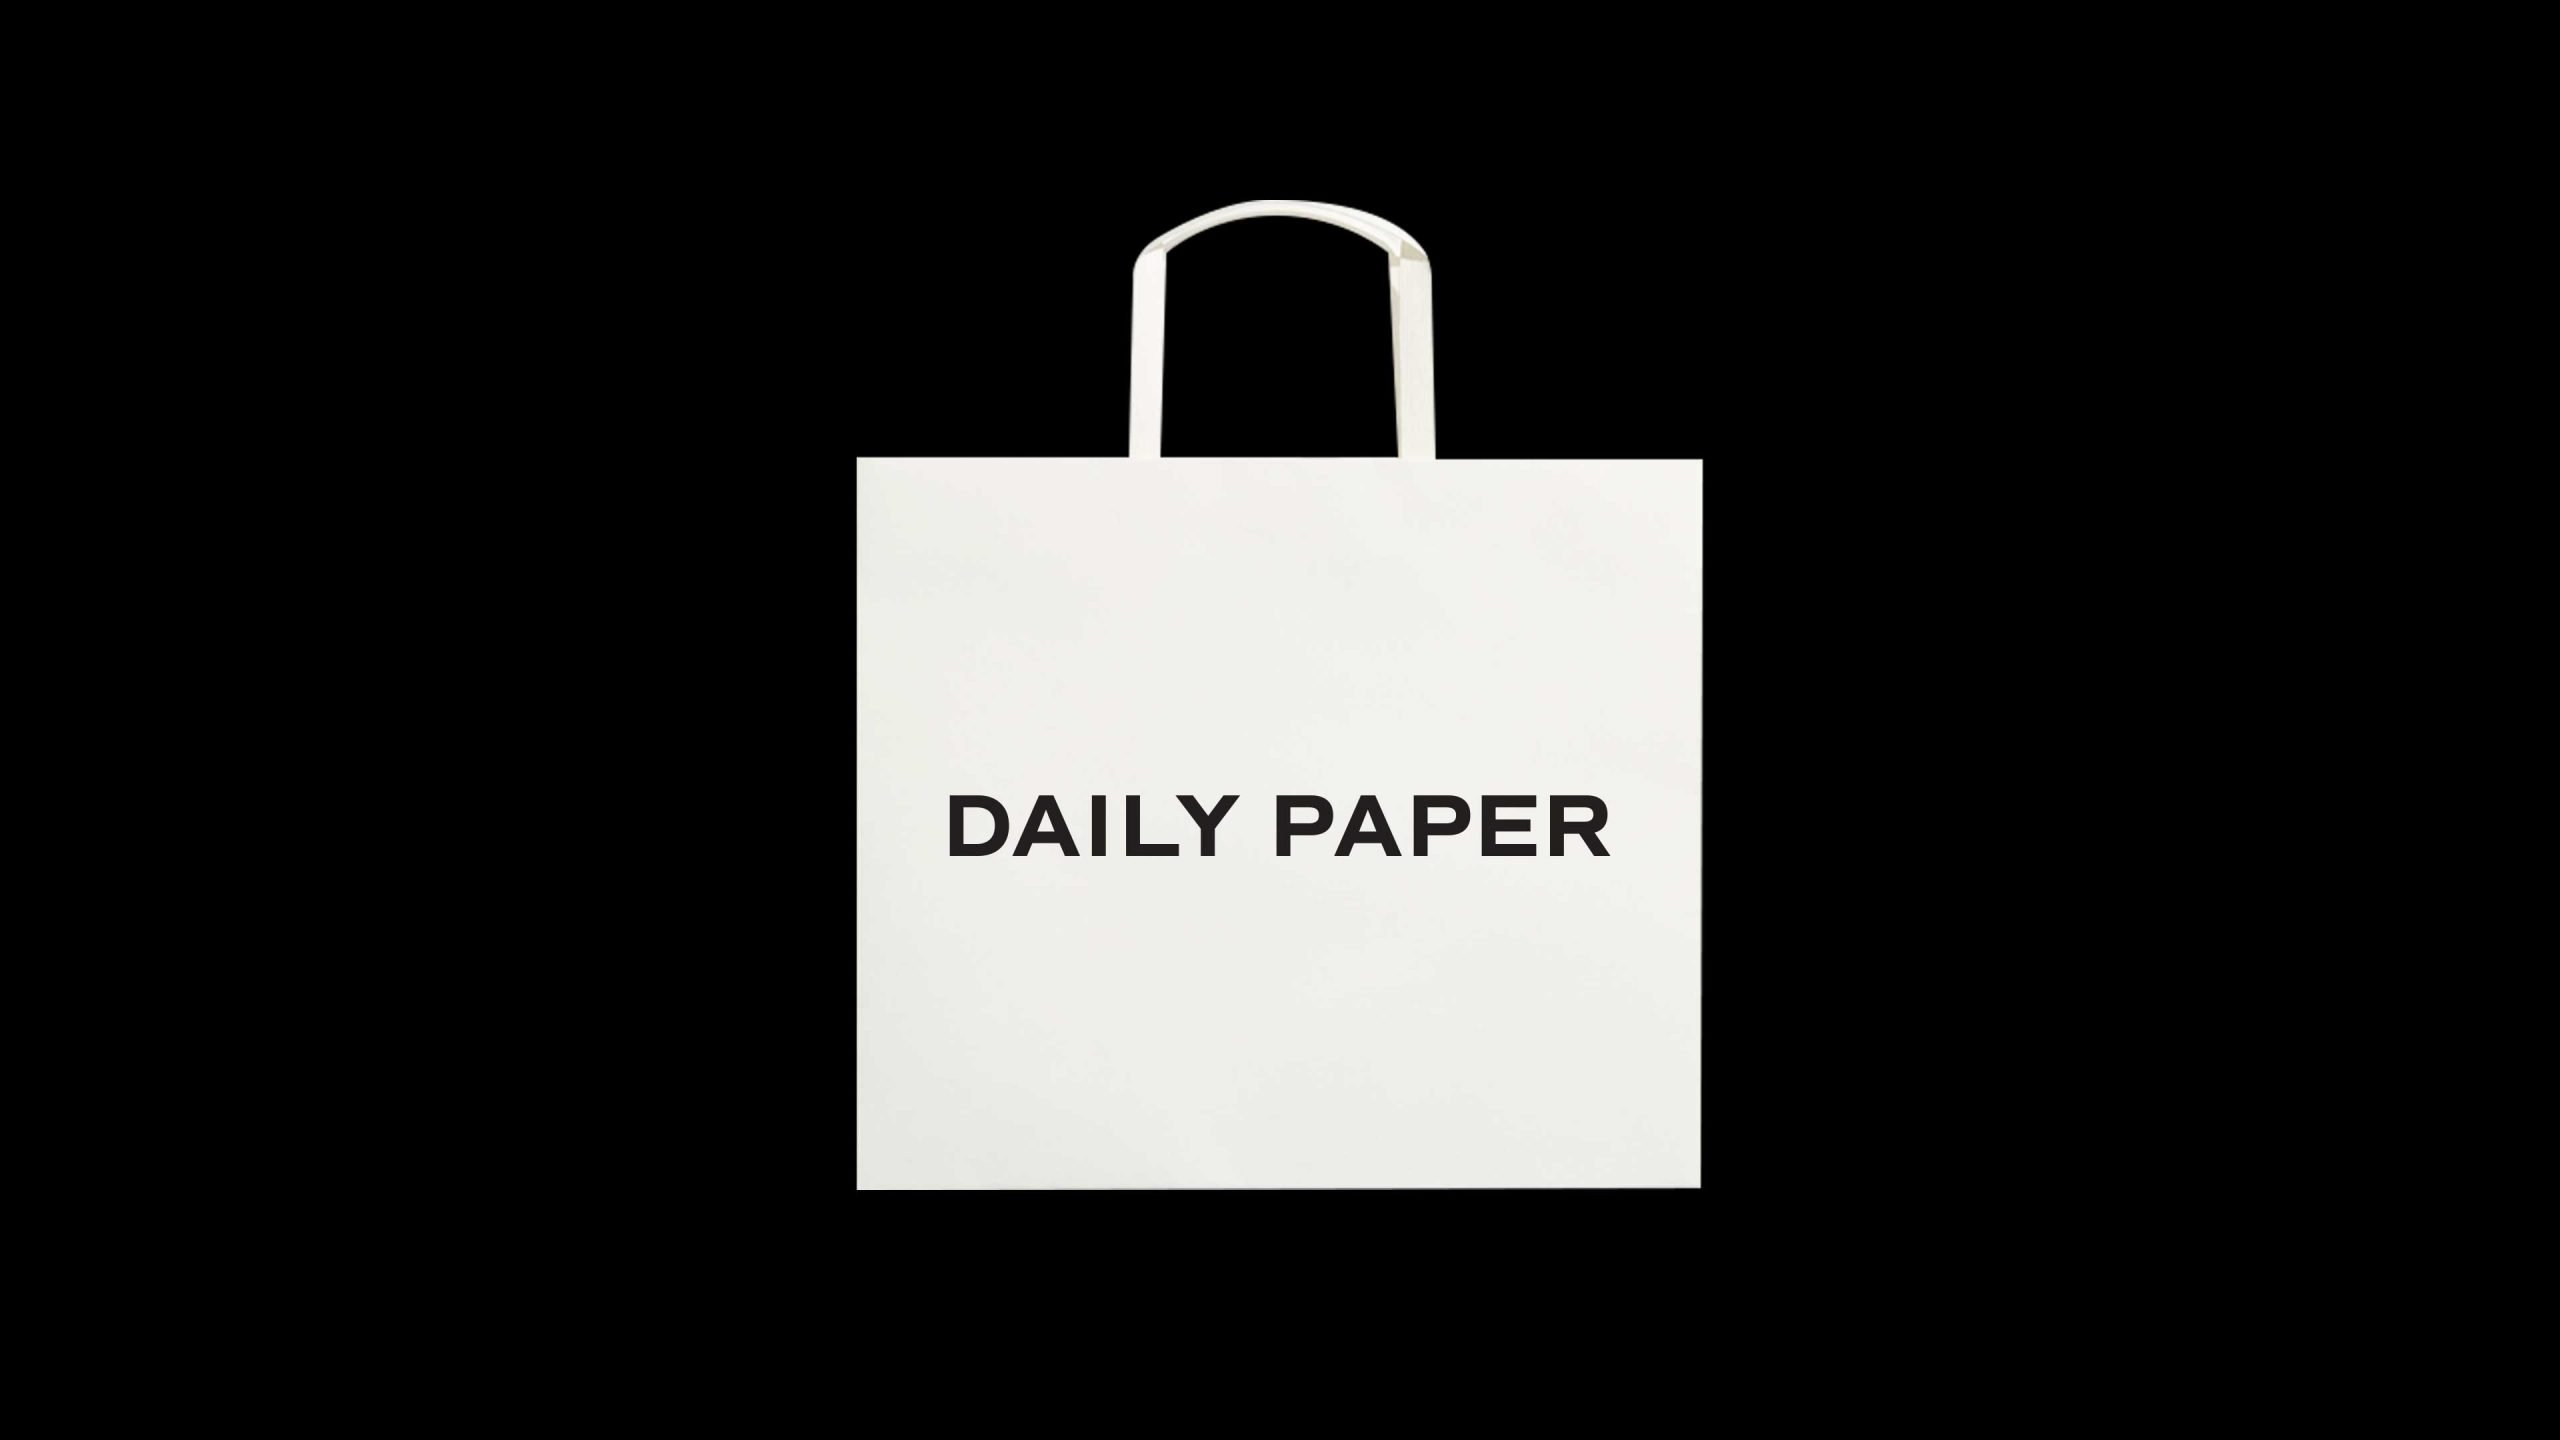 DAILY-PAPER-collaterals-02